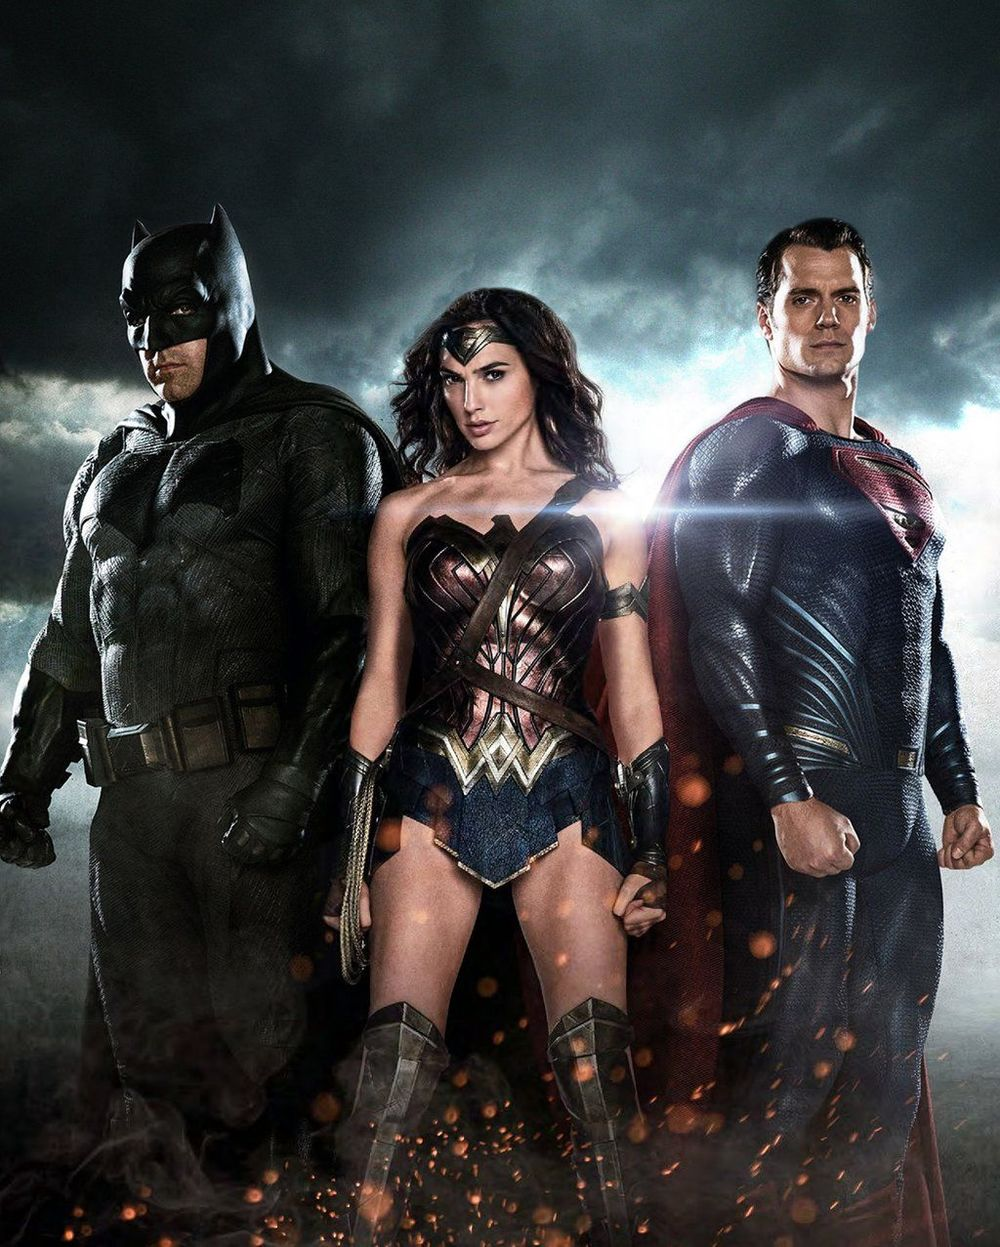 These three Justice League members will be well established by the time the Justice League movie comes out in 2017.